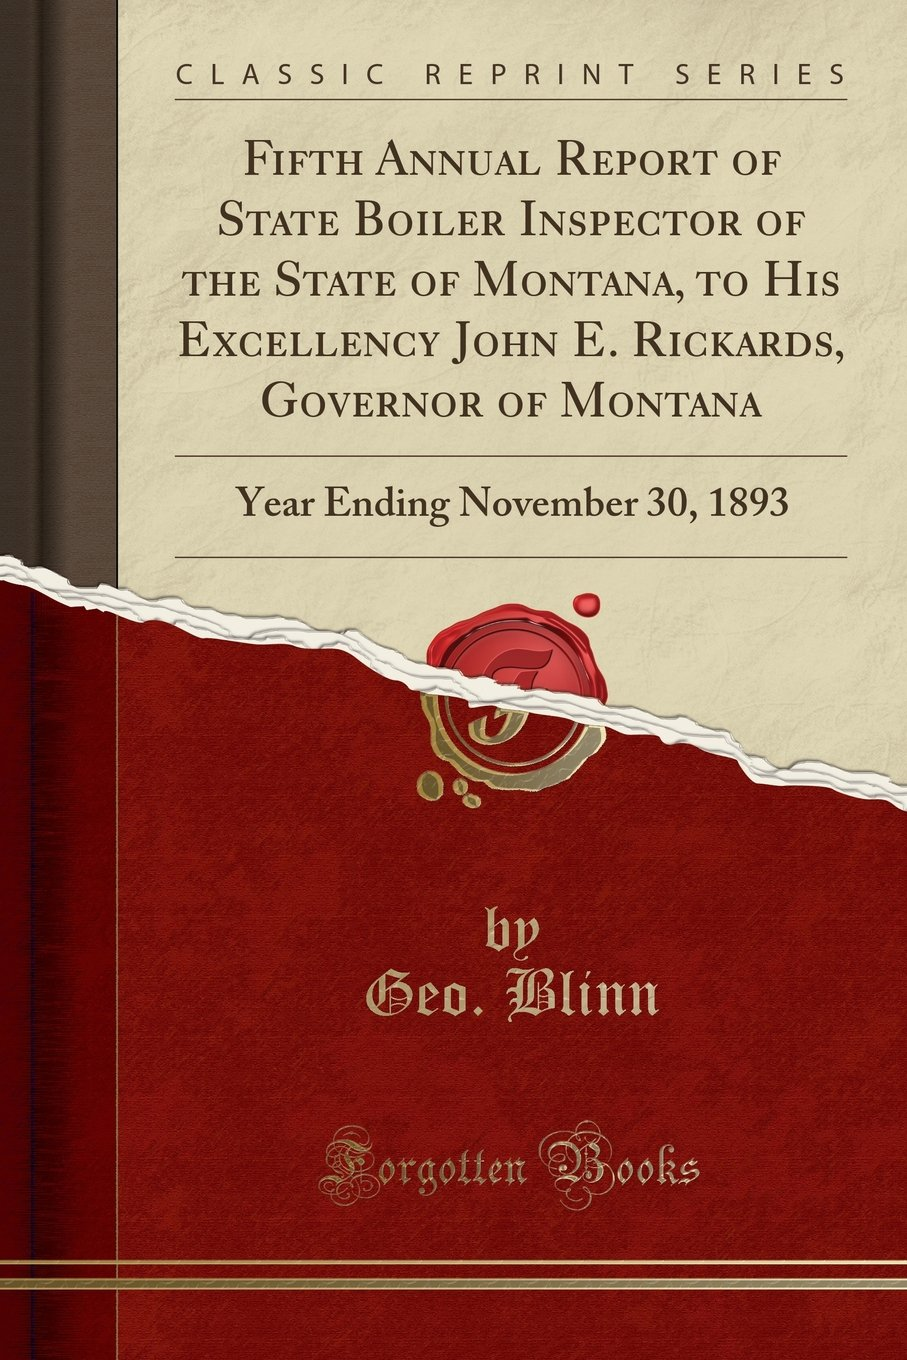 Download Fifth Annual Report of State Boiler Inspector of the State of Montana, to His Excellency John E. Rickards, Governor of Montana: Year Ending November 30, 1893 (Classic Reprint) pdf